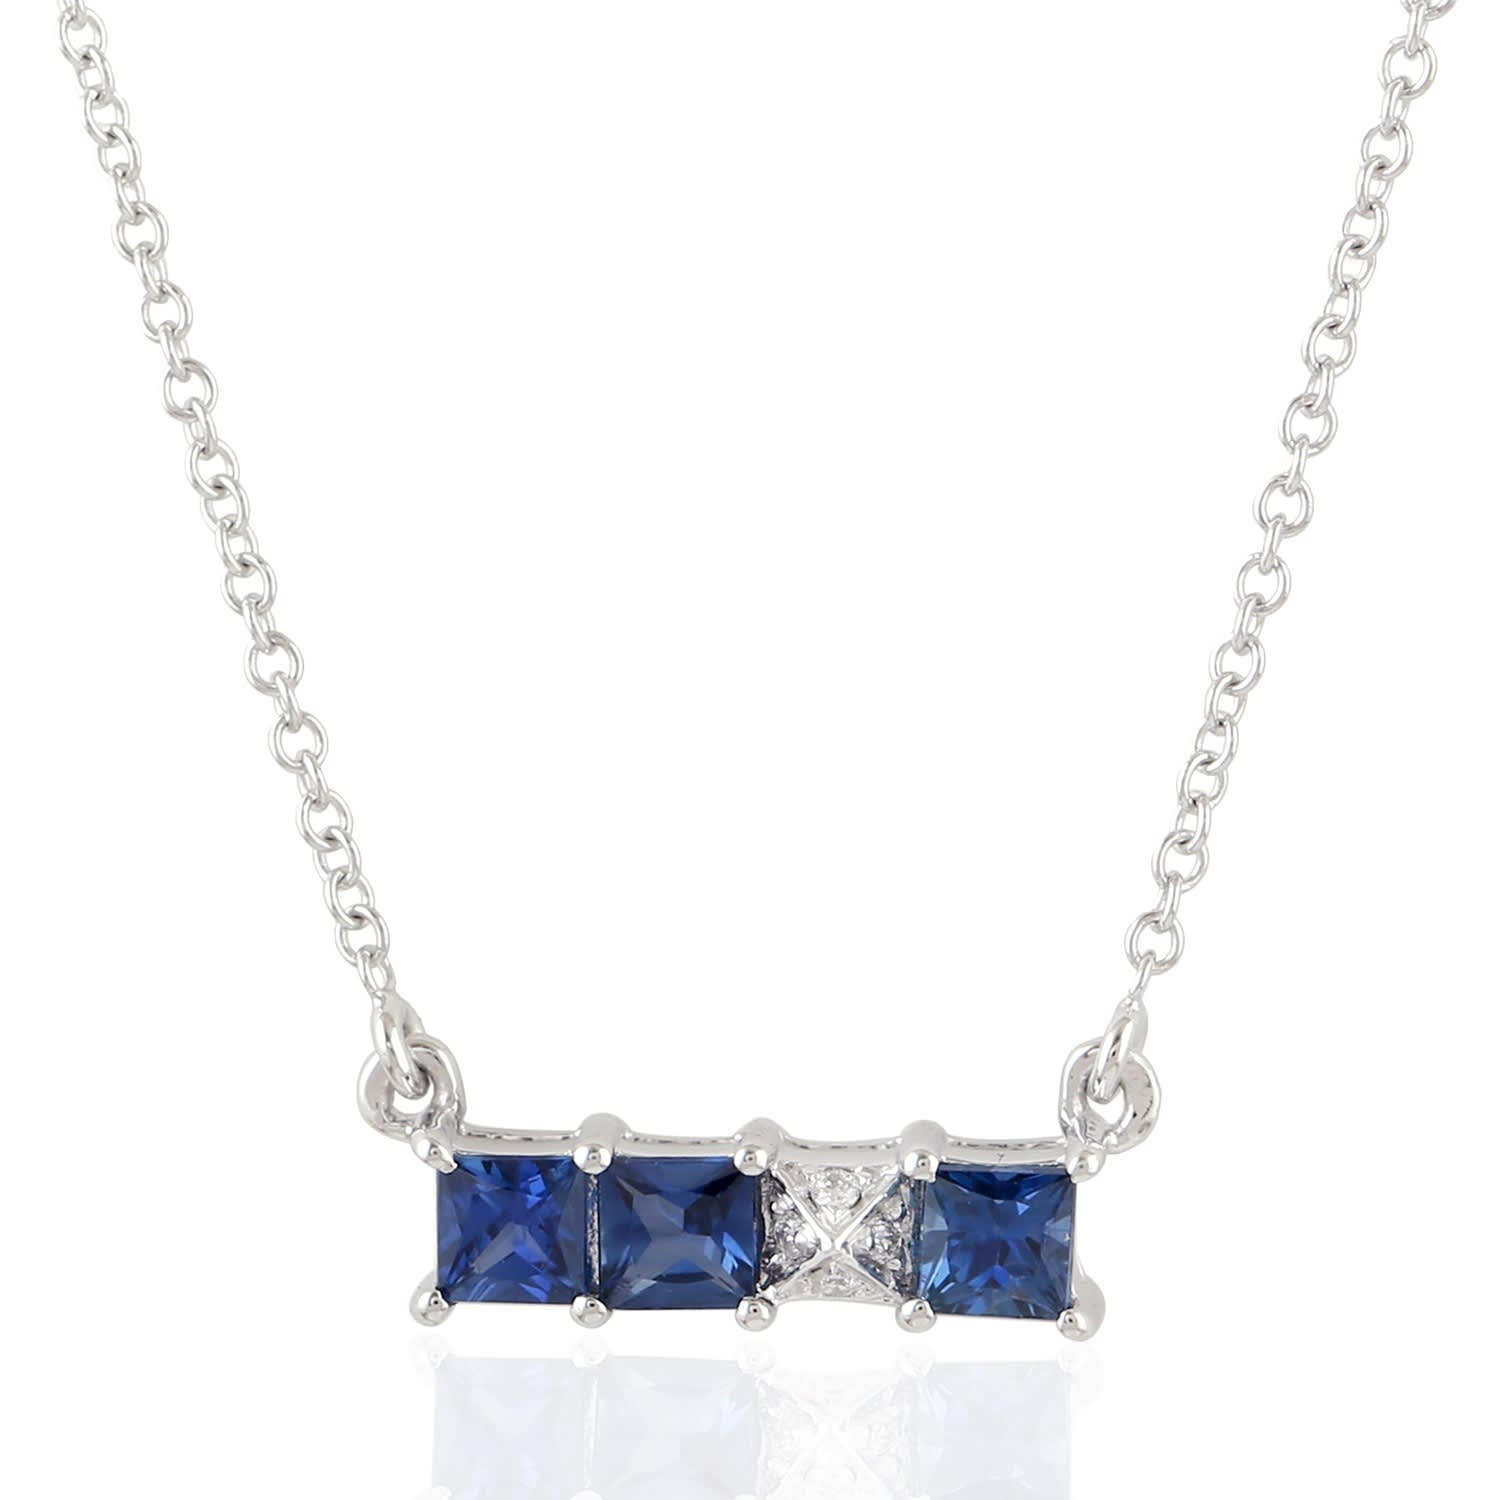 cb0493fde584 18K White Gold Blue Sapphire And Pave Diamond Bar Necklace